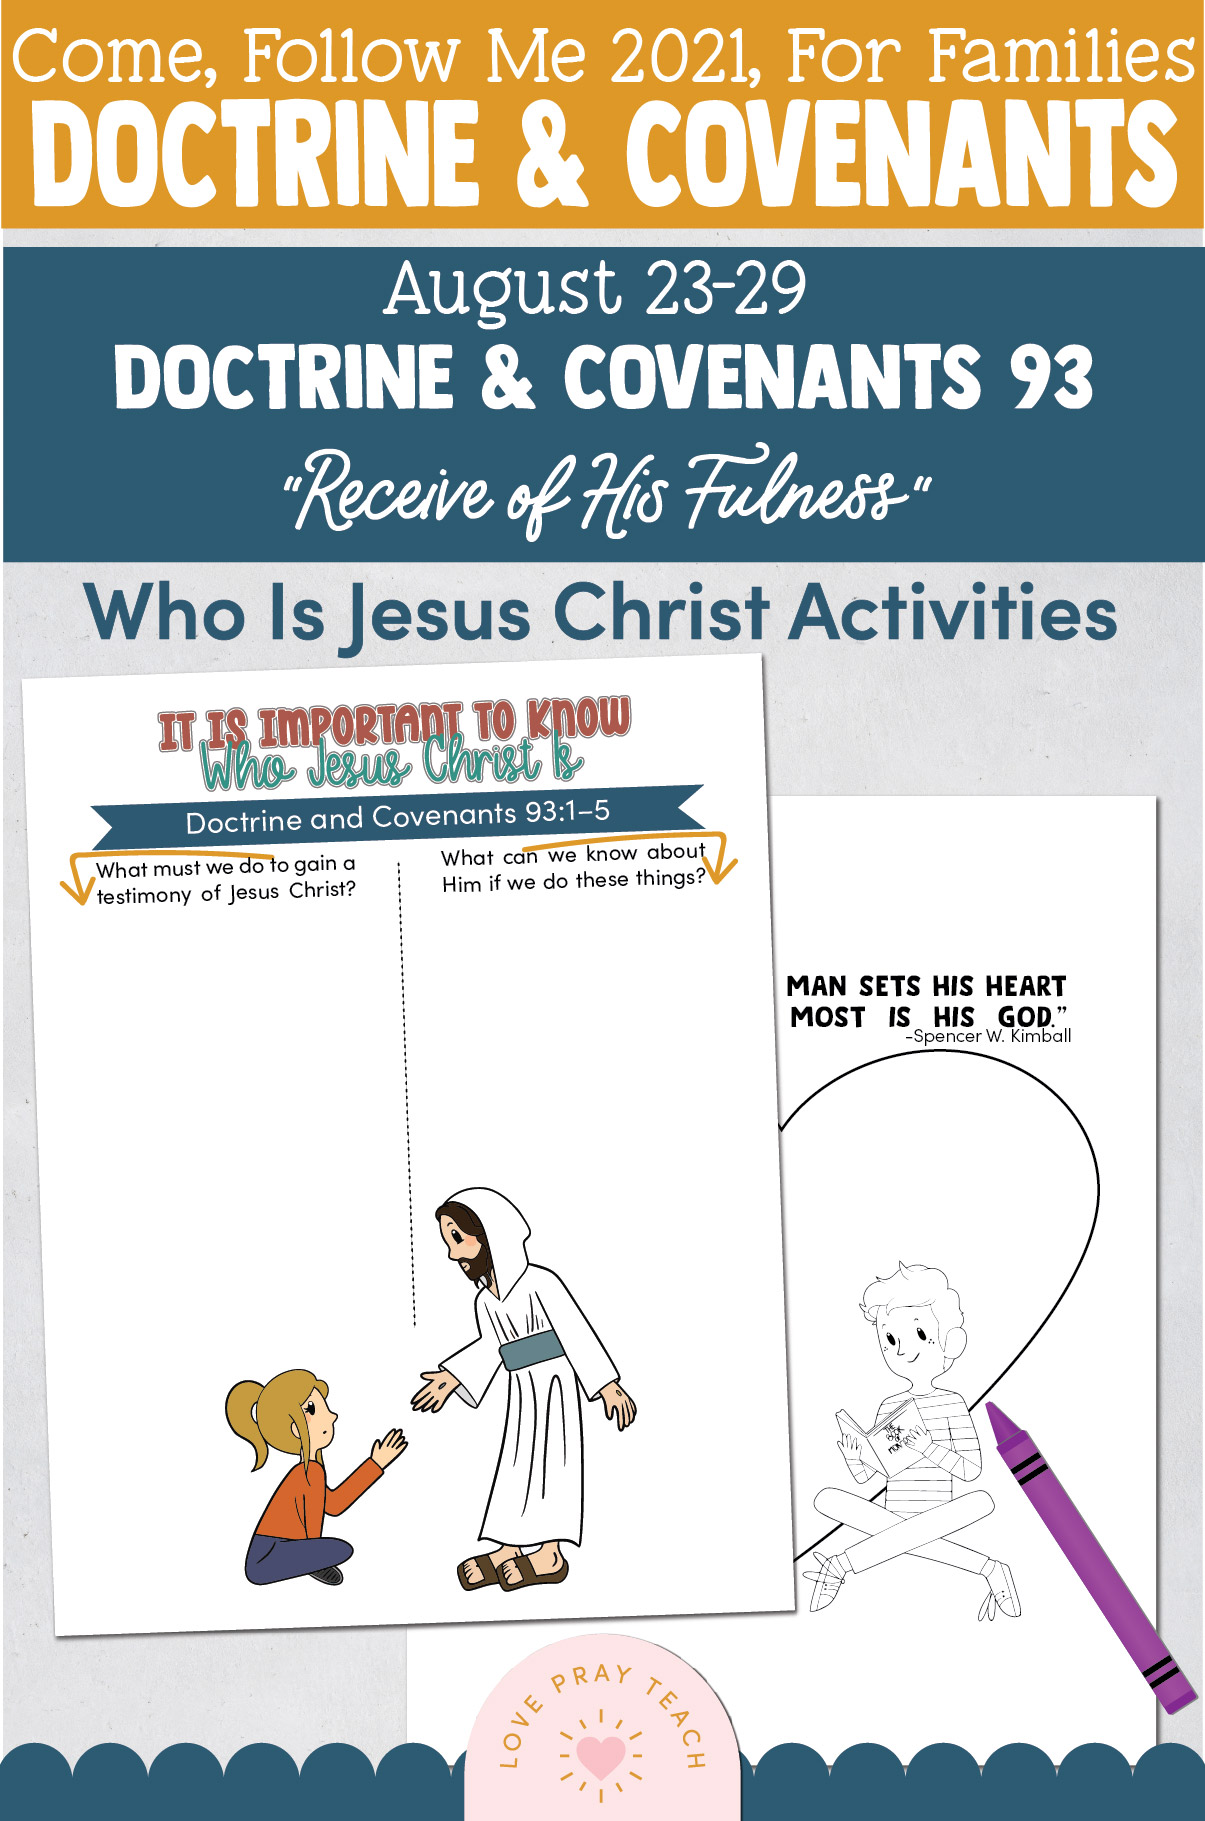 """Come, Follow Me—For Individuals and Families: Doctrine And Covenants 2021, August Week 5 Doctrine and Covenants 93: August 23-29,""""Receive of His Fulness"""""""